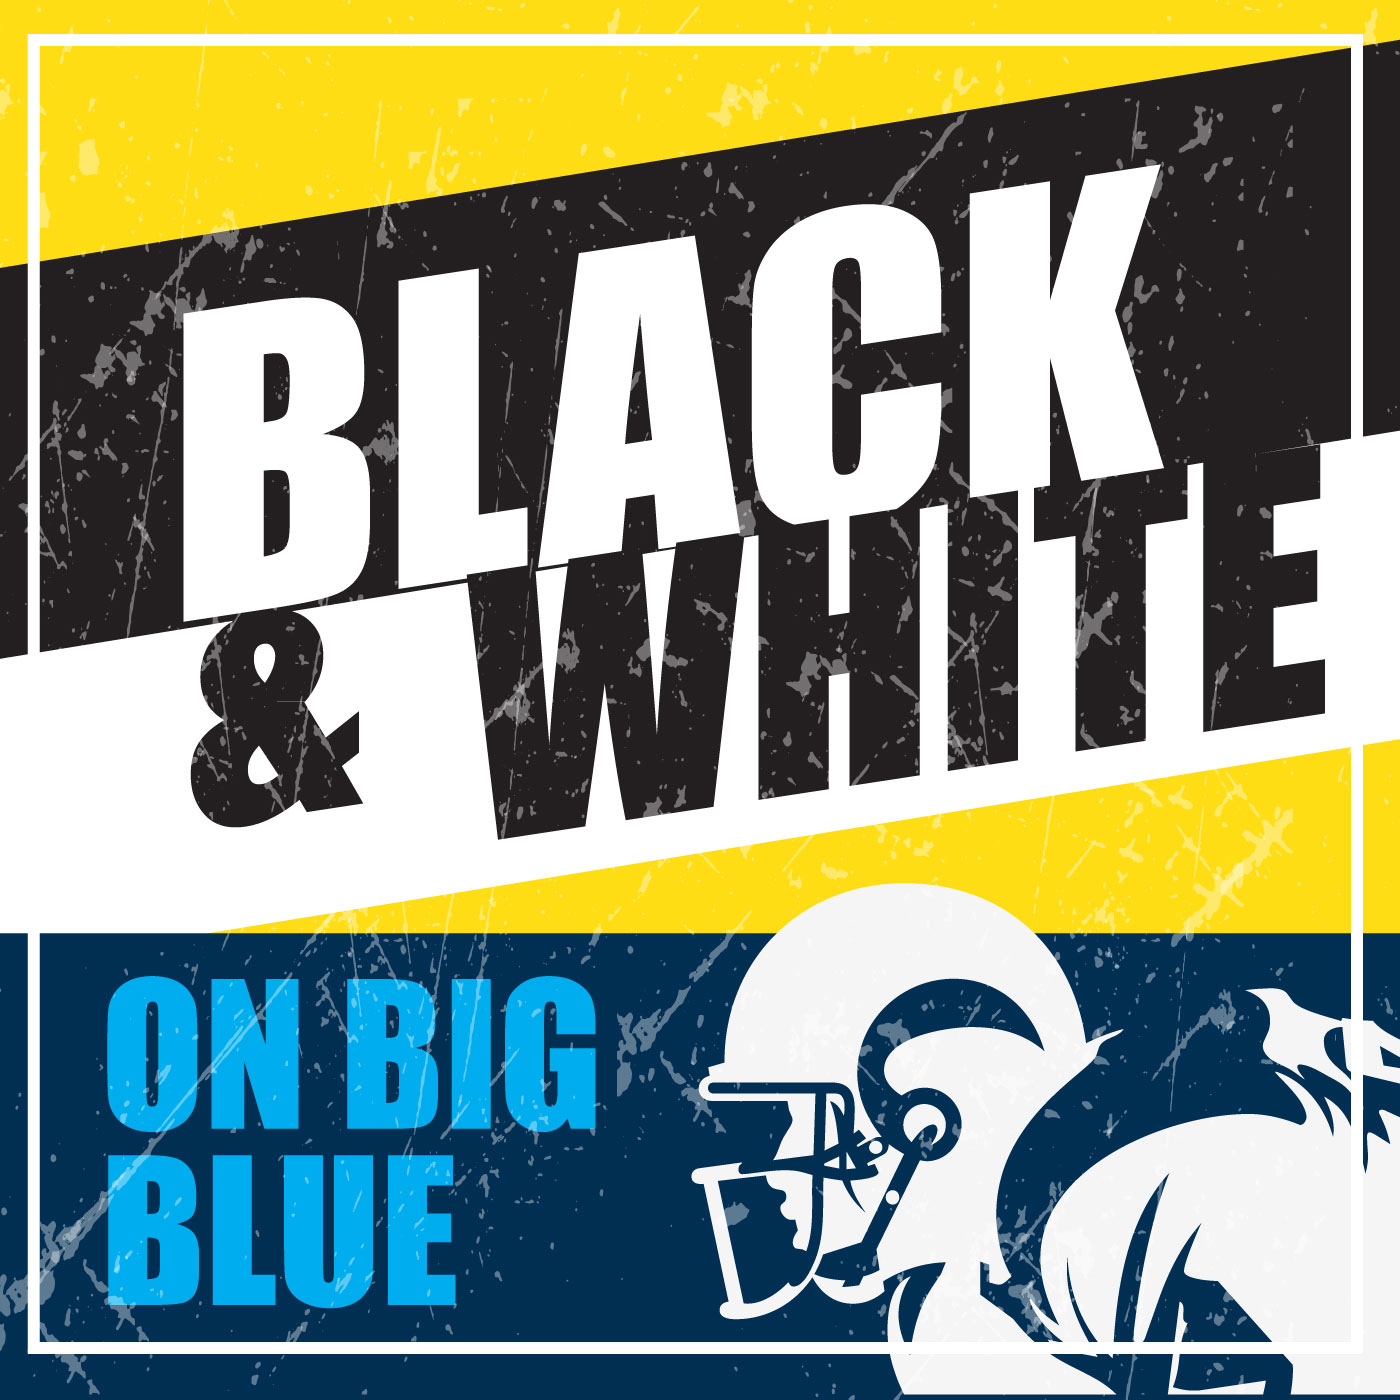 Episode 30 Black And White On Big Blue